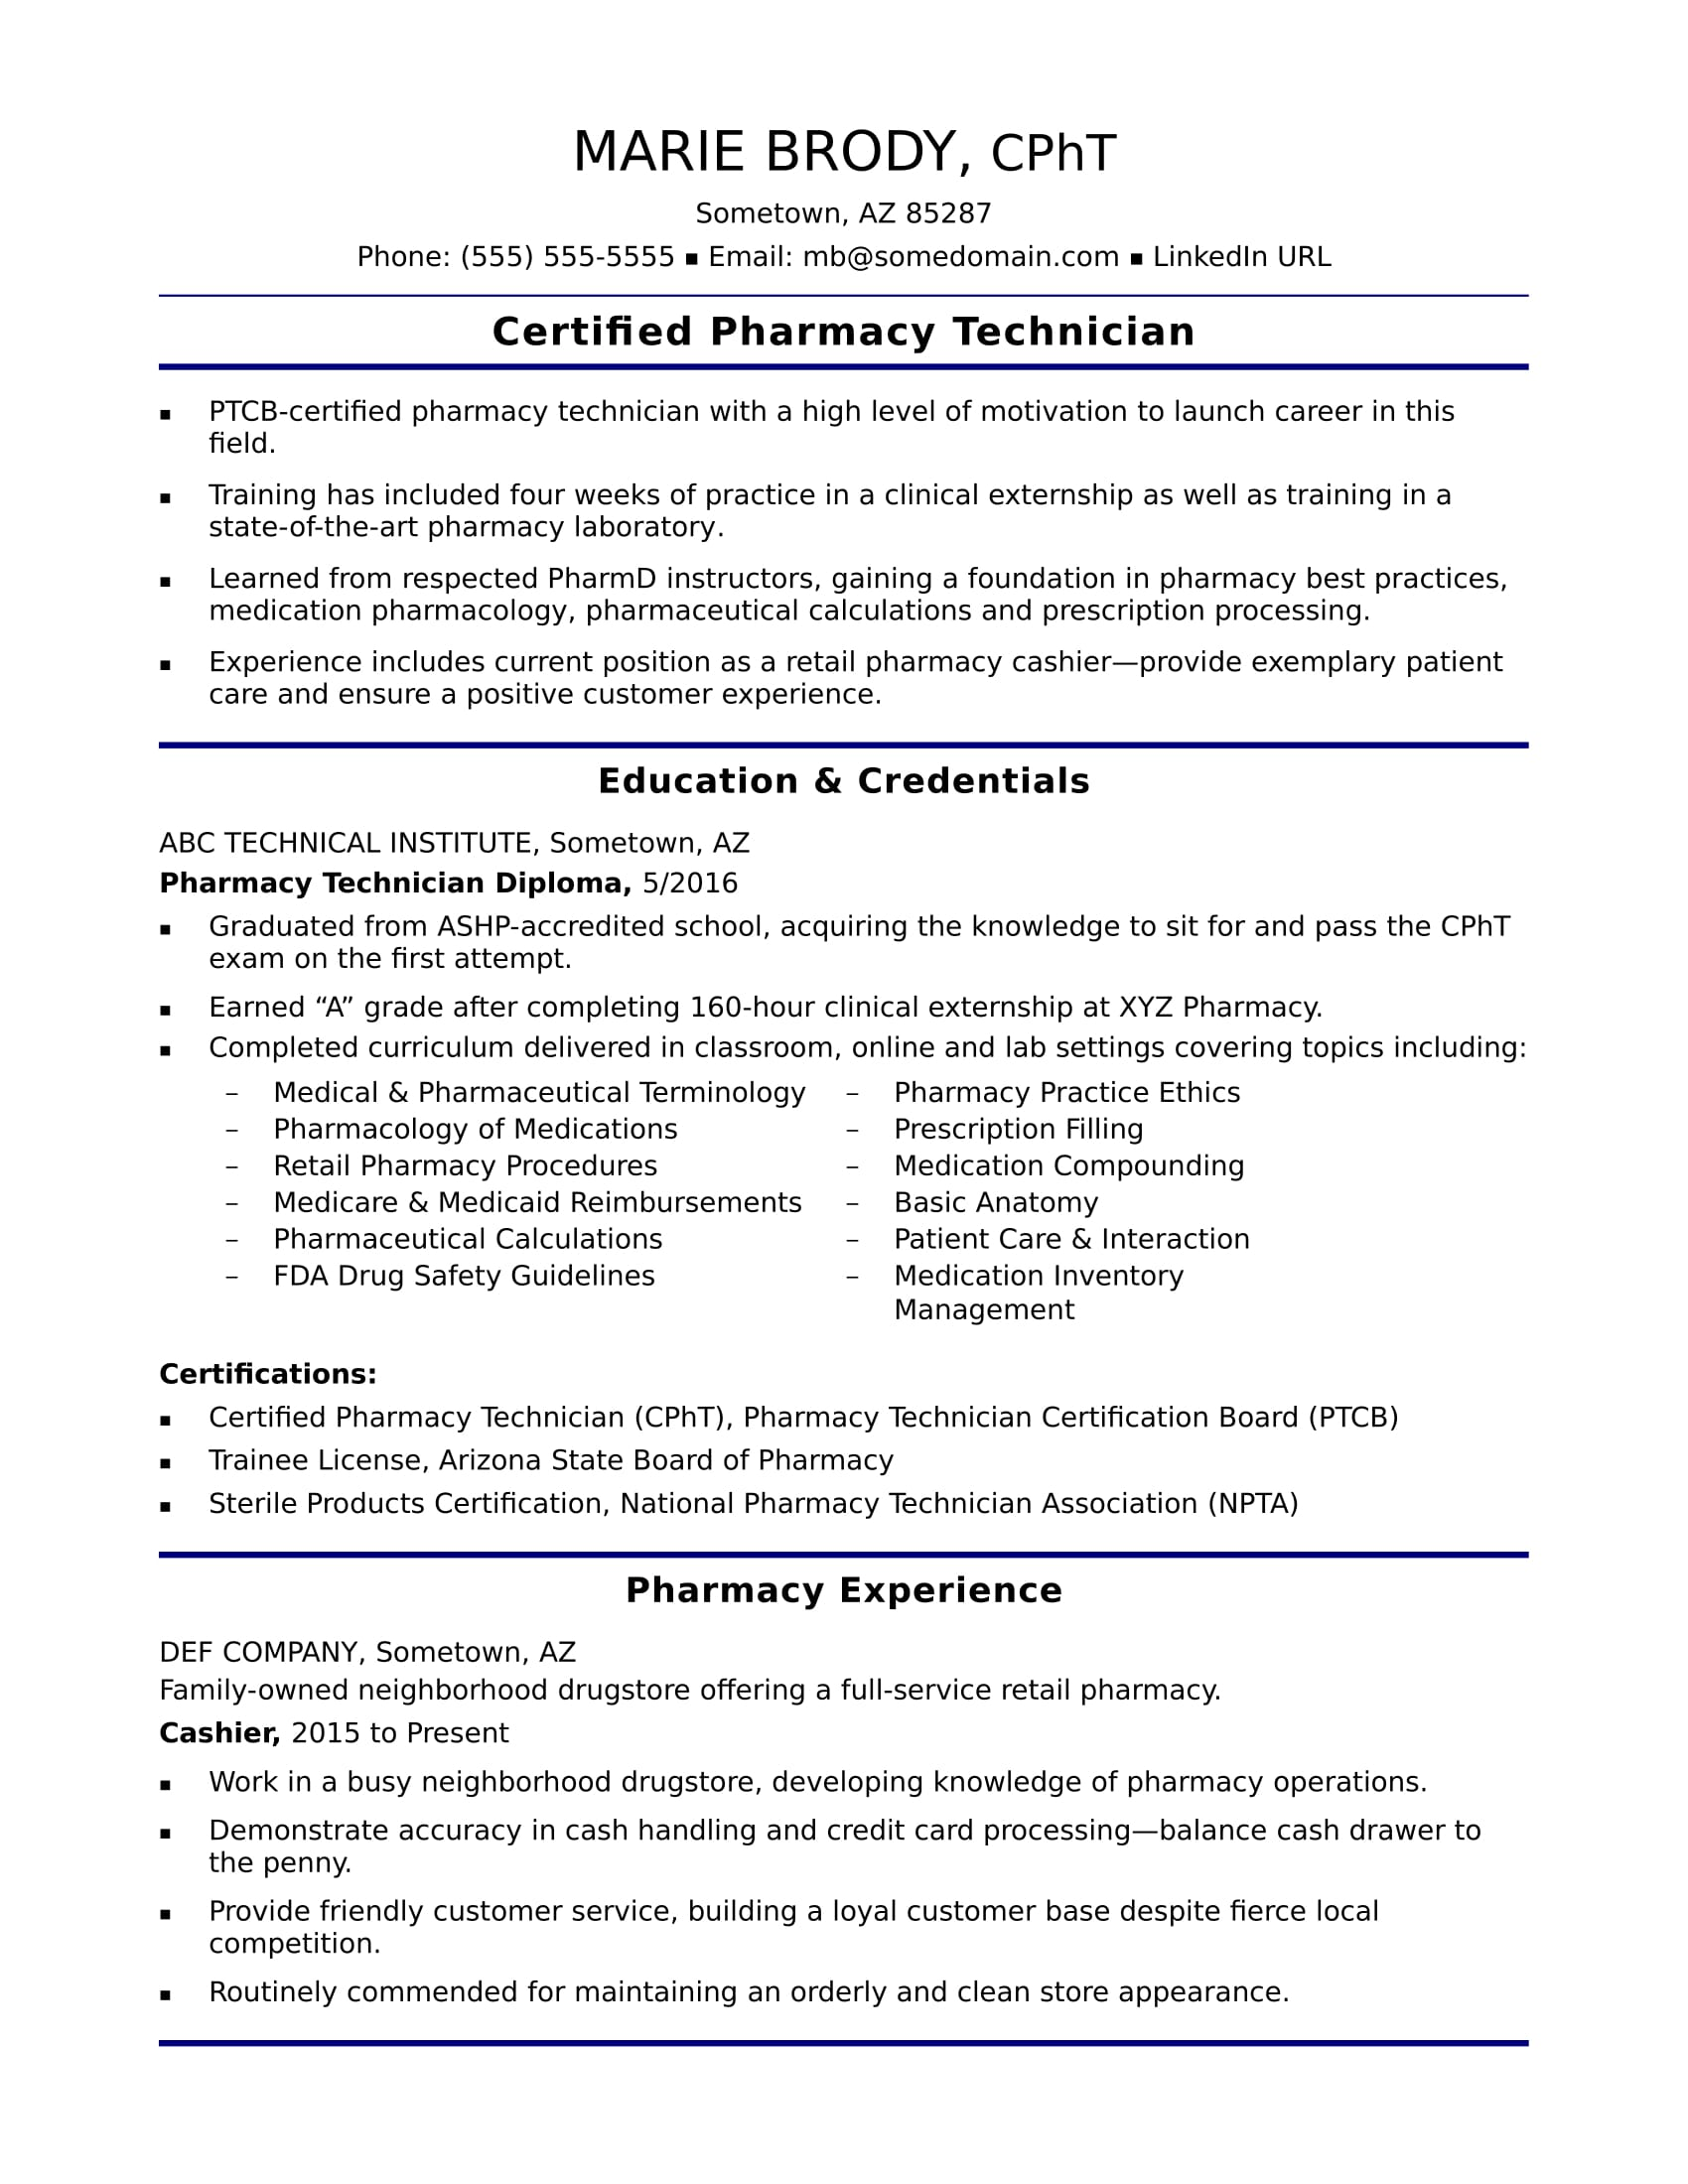 sample resume for an entry level pharmacy technician - Resume For Pharmacy Tech